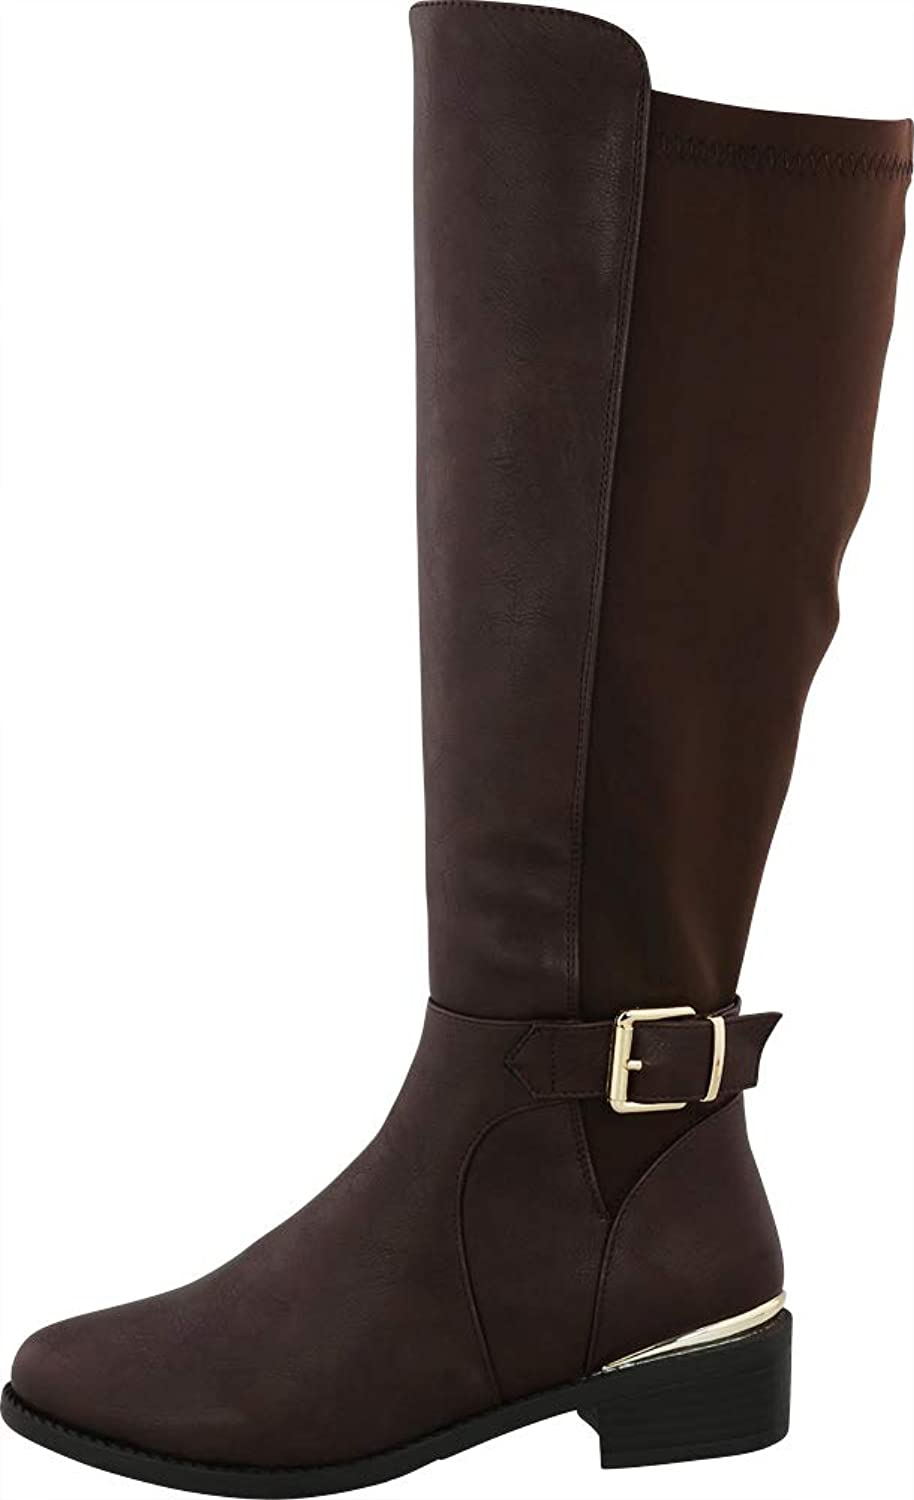 Cambridge Select Women's Round Toe Buckle Stretch Knee-High Low Chunky Heel Riding Boot